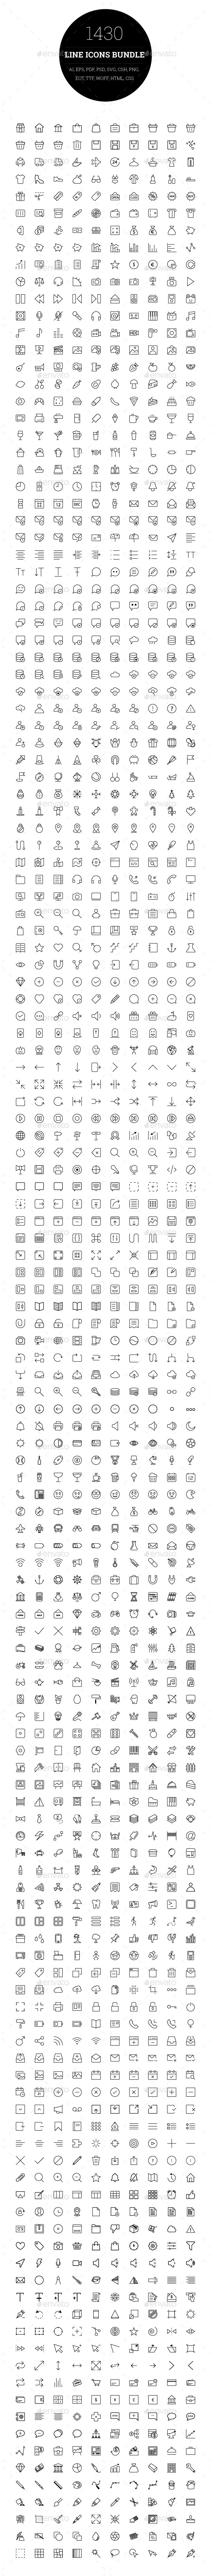 1430 Line Icons Bundle - Web Icons